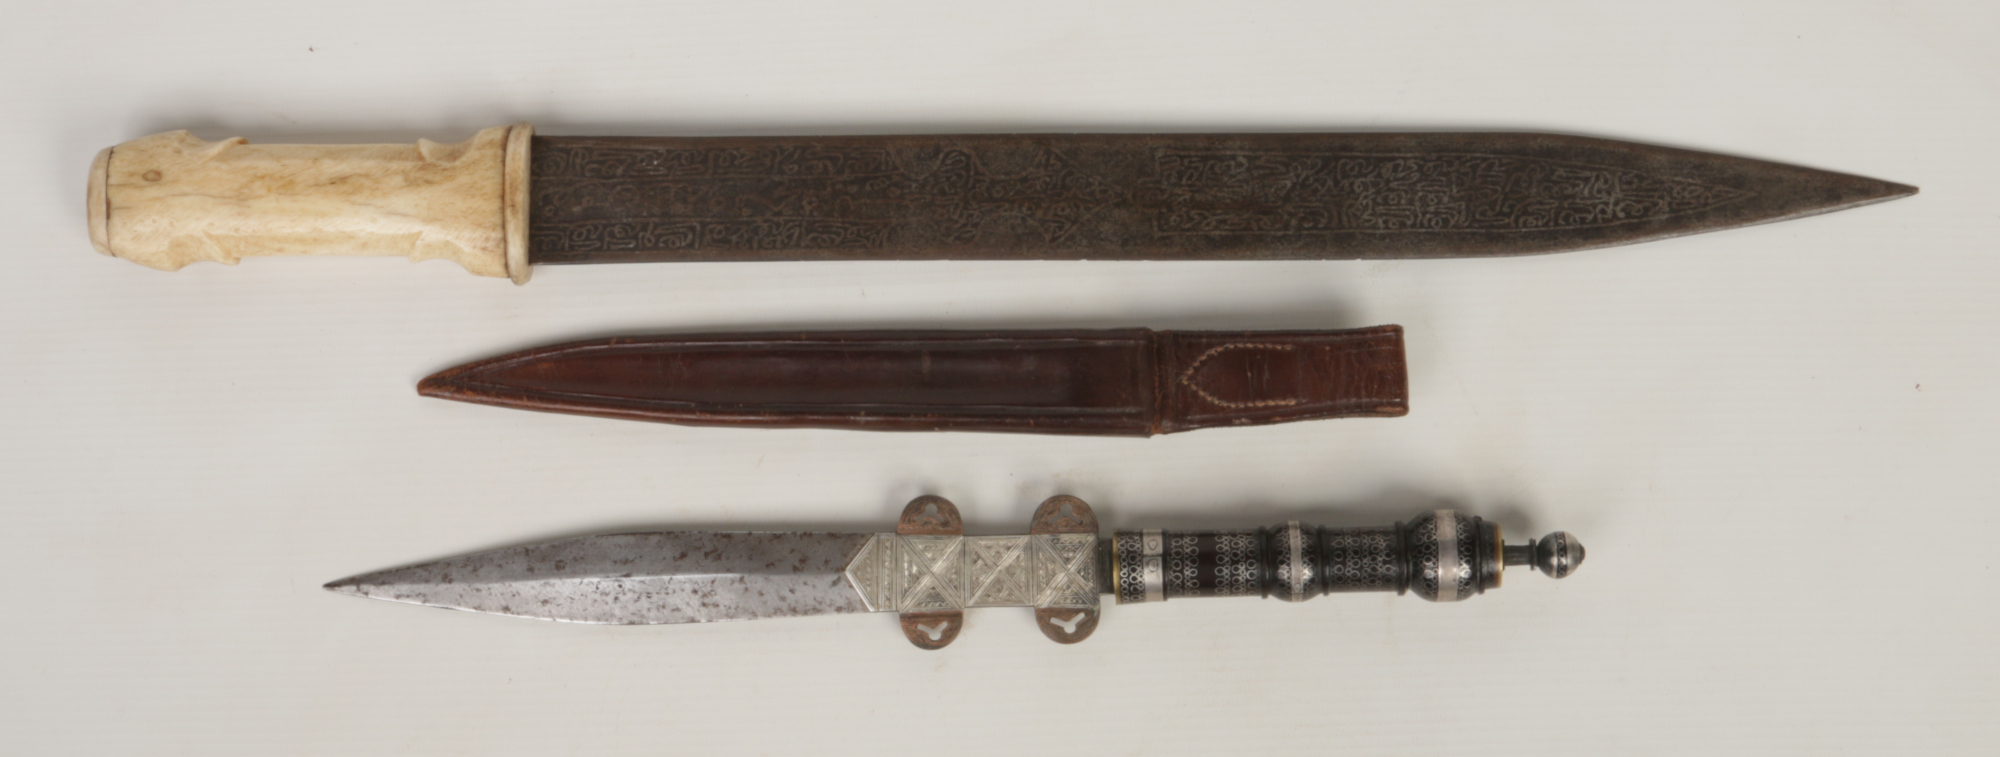 Lot 263 - A 19th century Eastern hunting knife in associated leather sheath, with turned hardwood grip